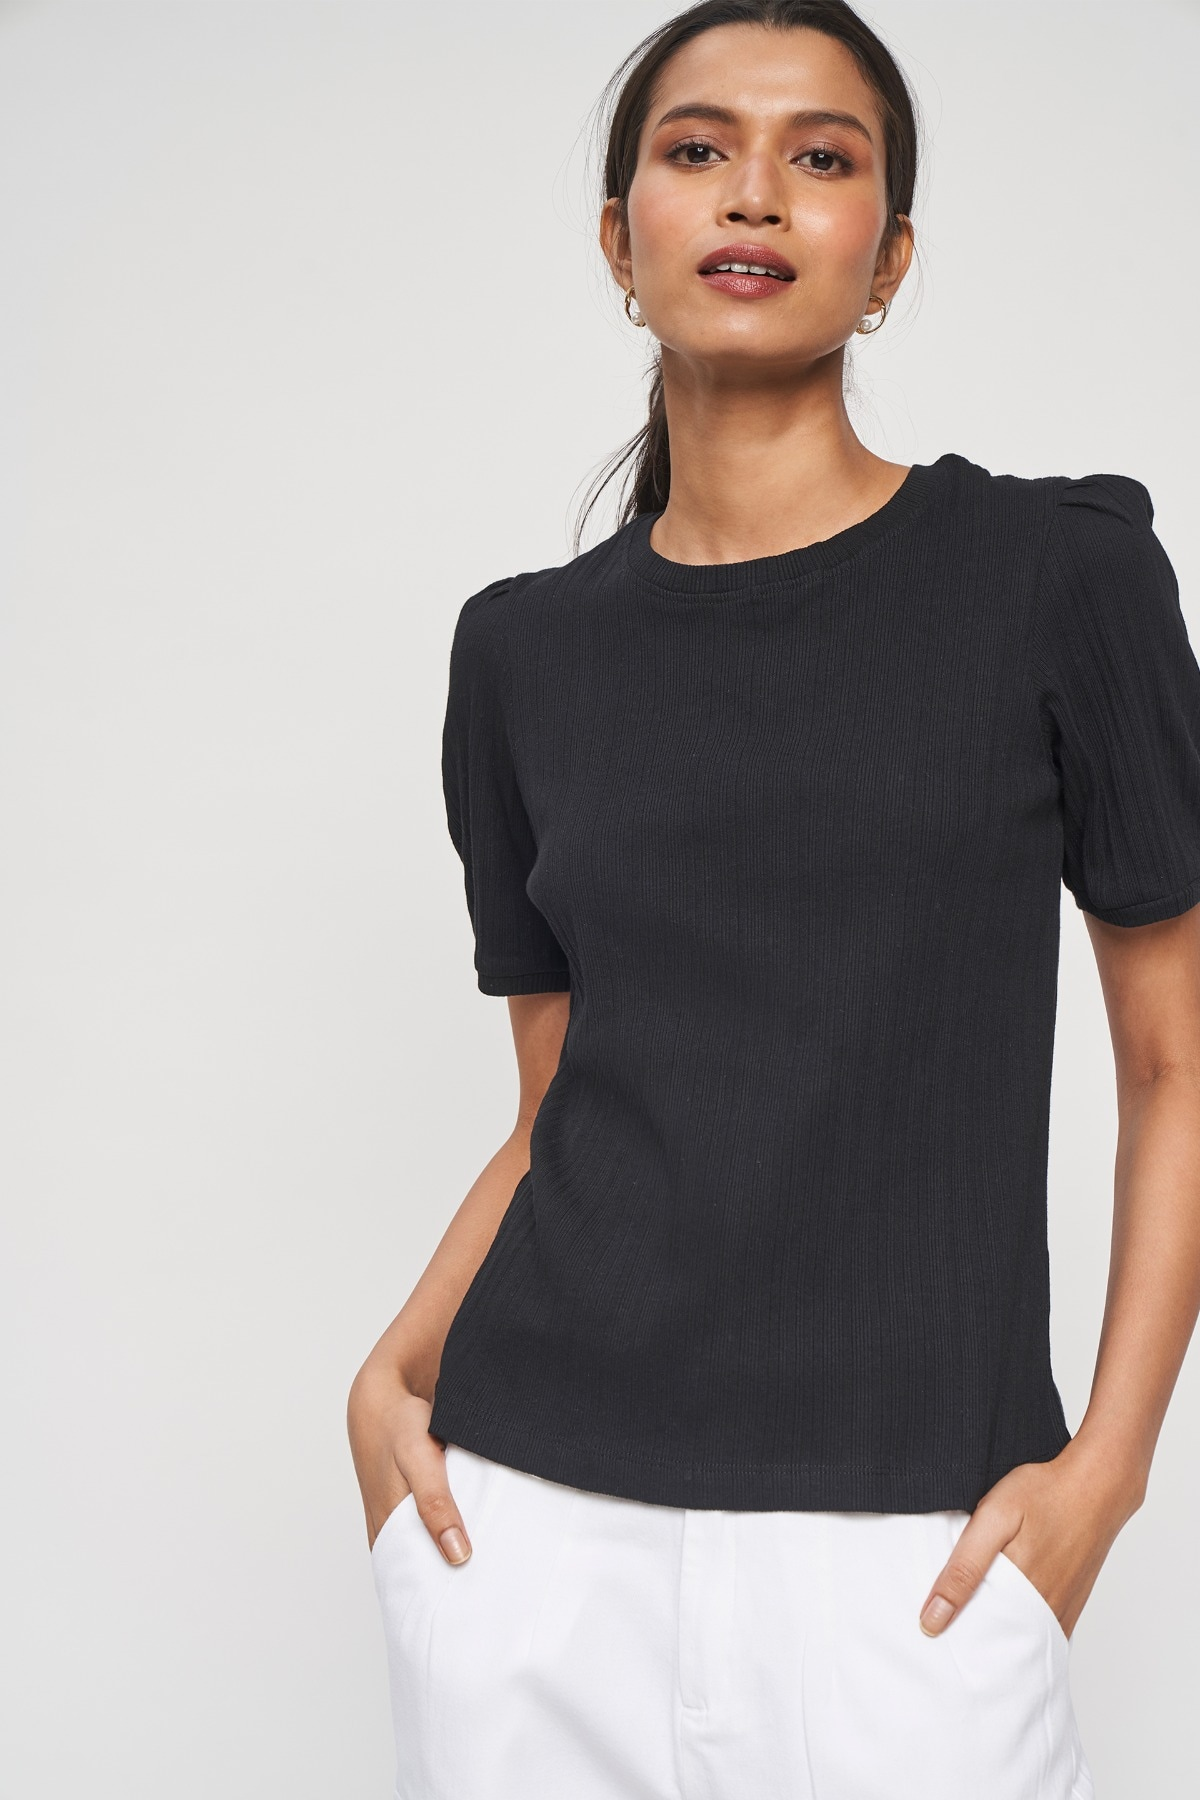 AND   Black Solid Straight Top